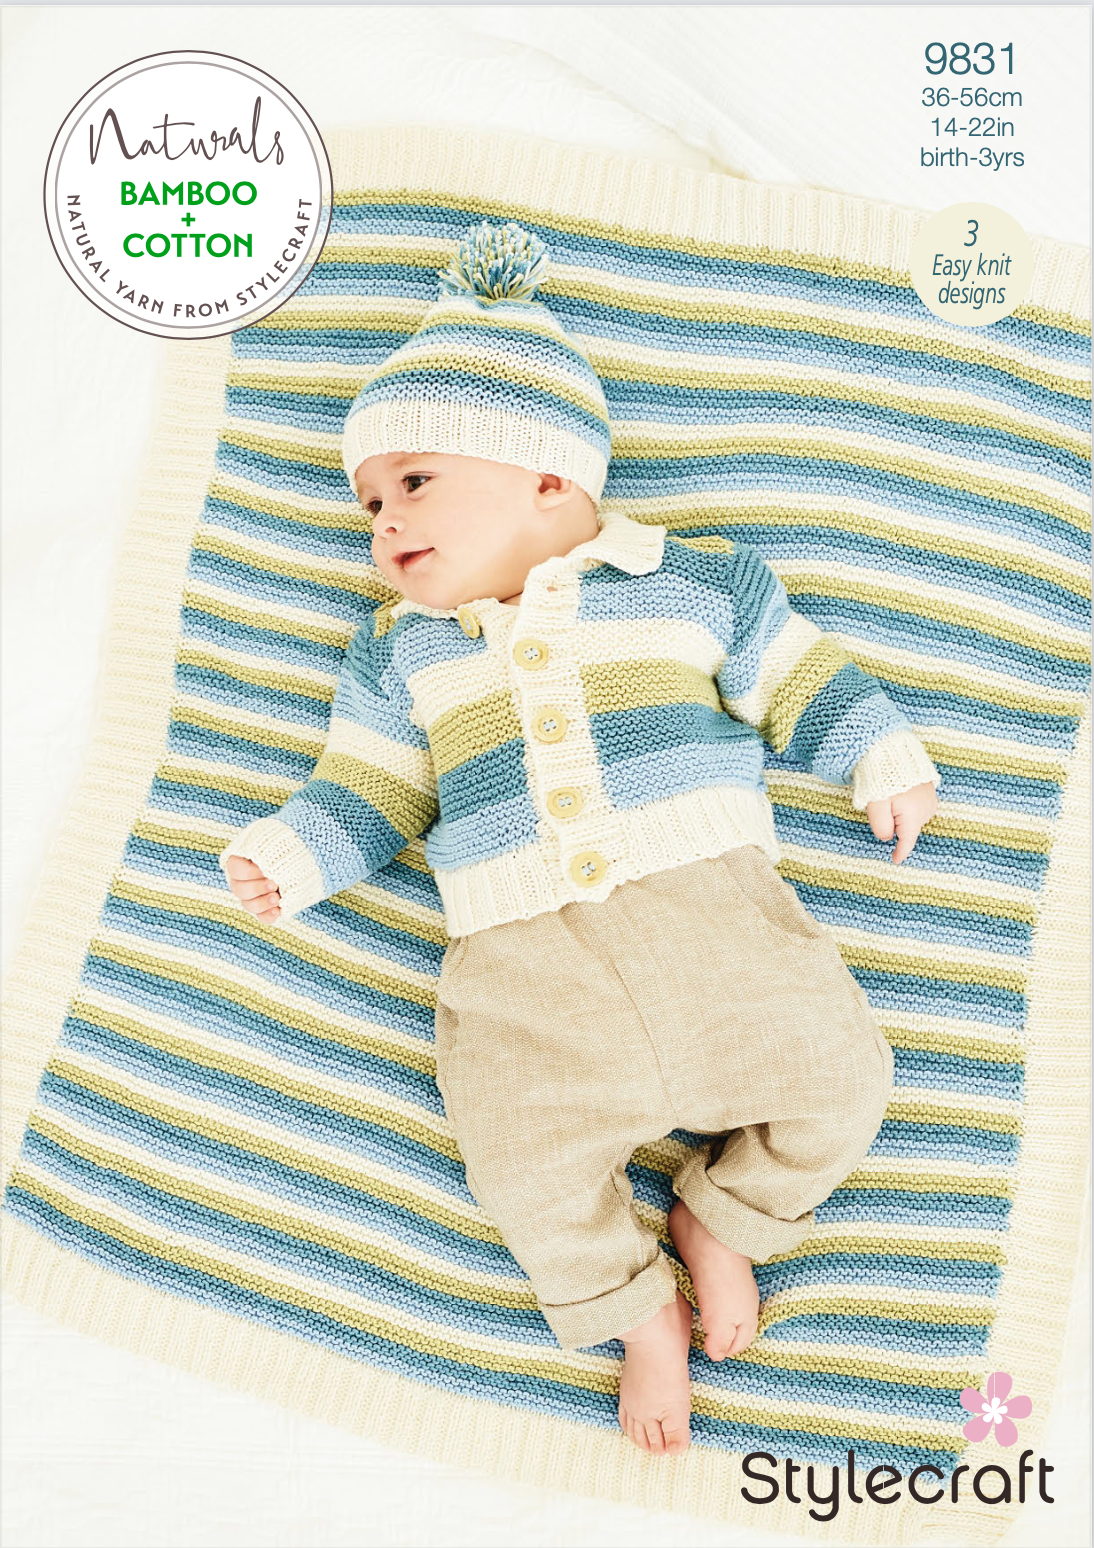 Stylecraft Pattern Naturals Bamboo+Cotton 9831 (download) product image